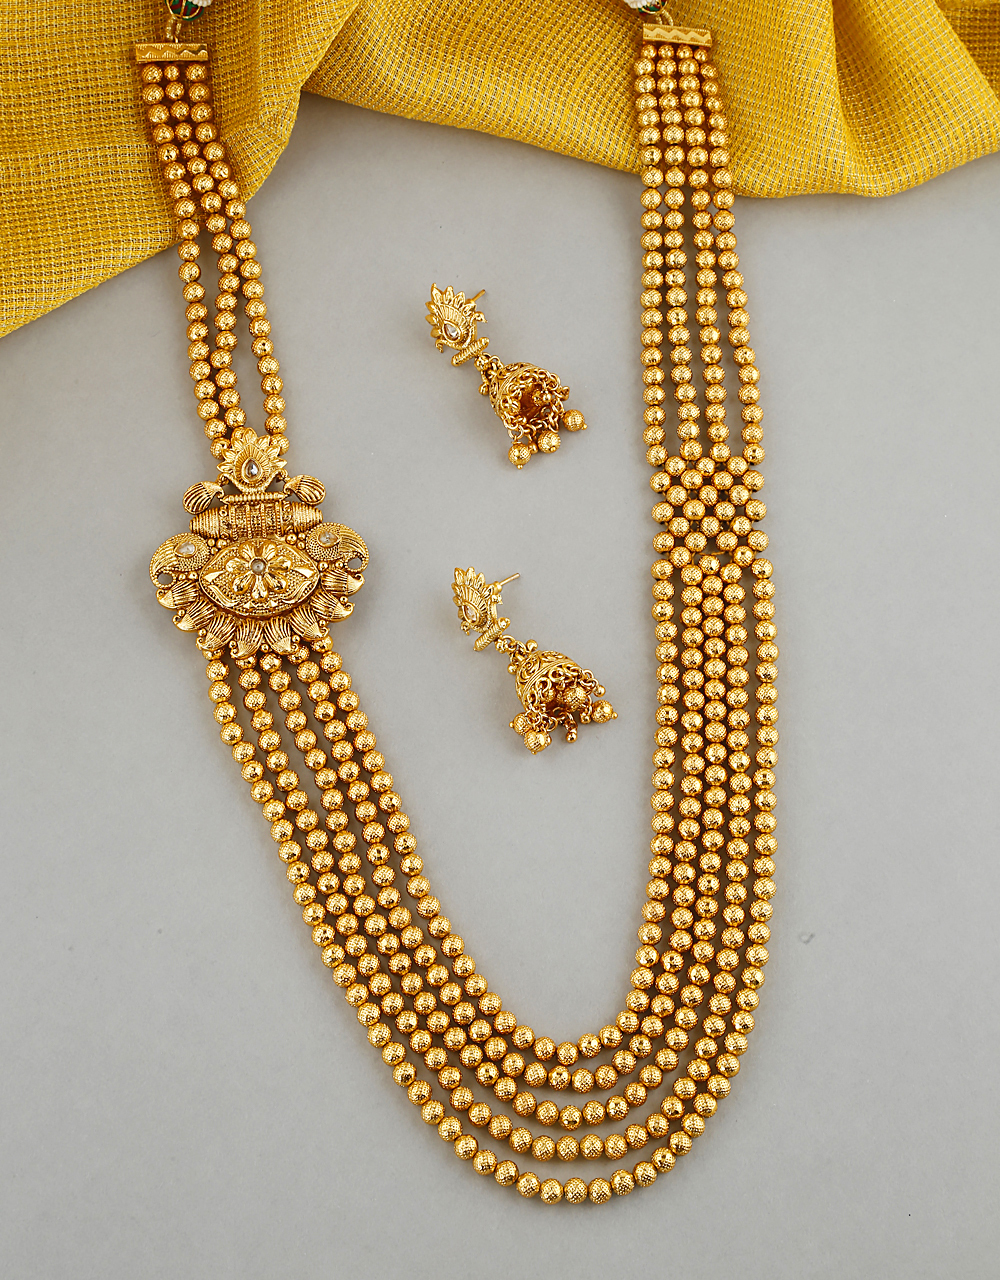 Fancy Design With Sparkling Gold Finish Long Necklace For Women